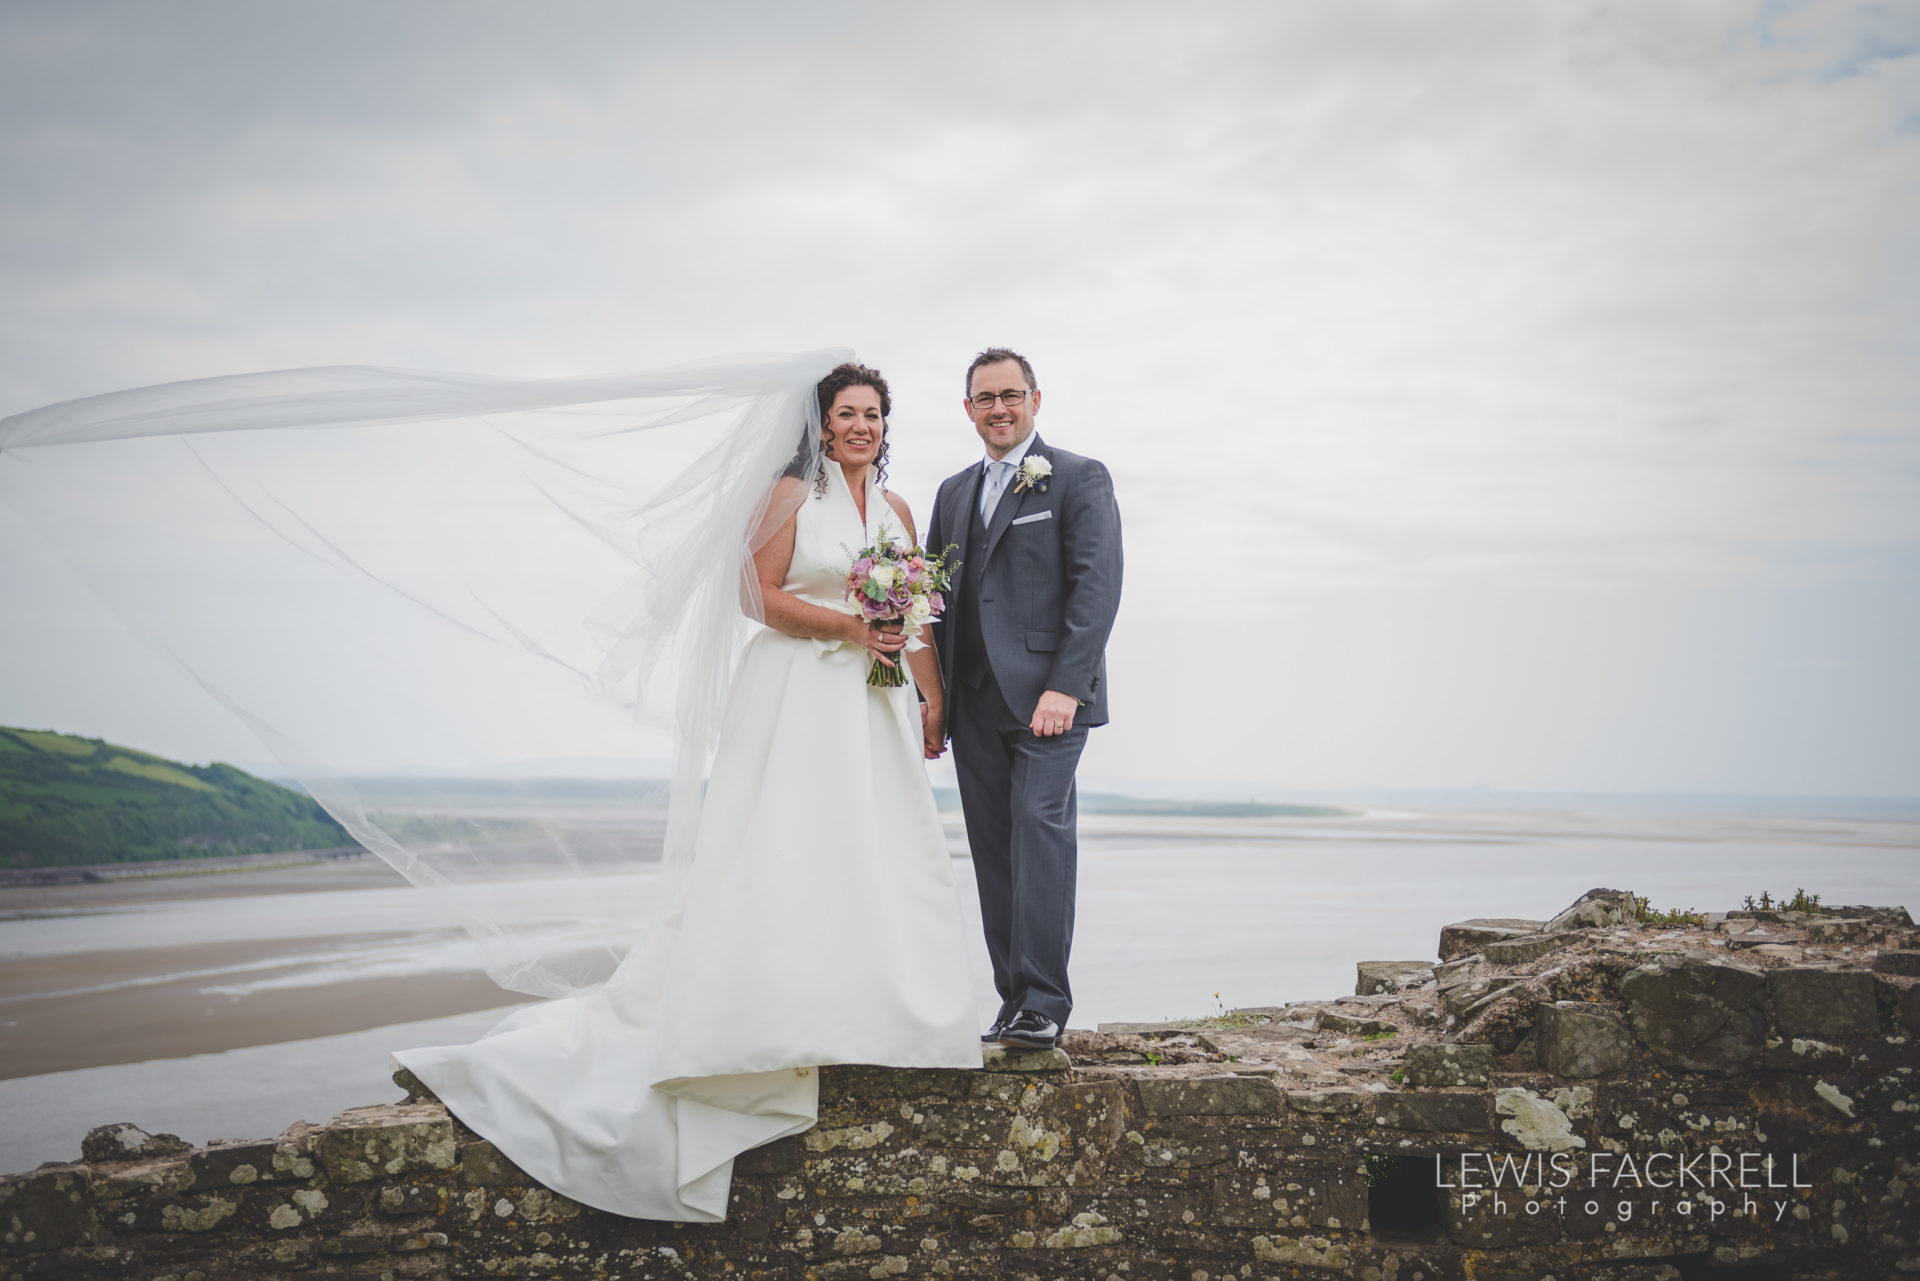 Lewis-Fackrell-Photography-Wedding-Photographer-Cardiff-Swansea-Bristol-Newport-Pre-wedding-photoshoot-Rhian-Mark-Mansion-House-Llansteffan-Carmarthenshire--61